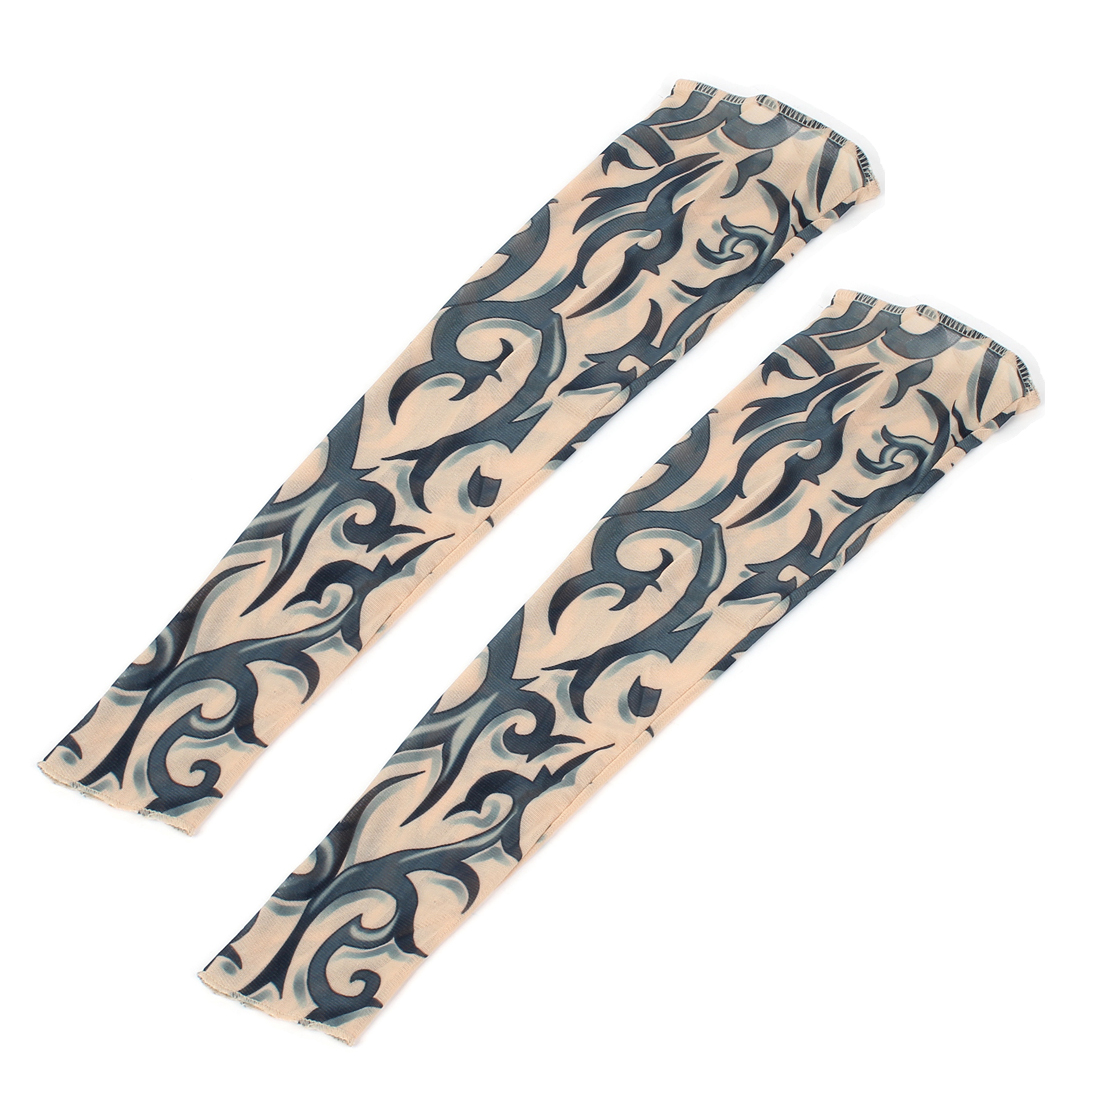 2 Pcs Navy Blue Tribal Print Nylon Stretchy Temporary Fake Tattoo Arm Sleeve Oversleeve